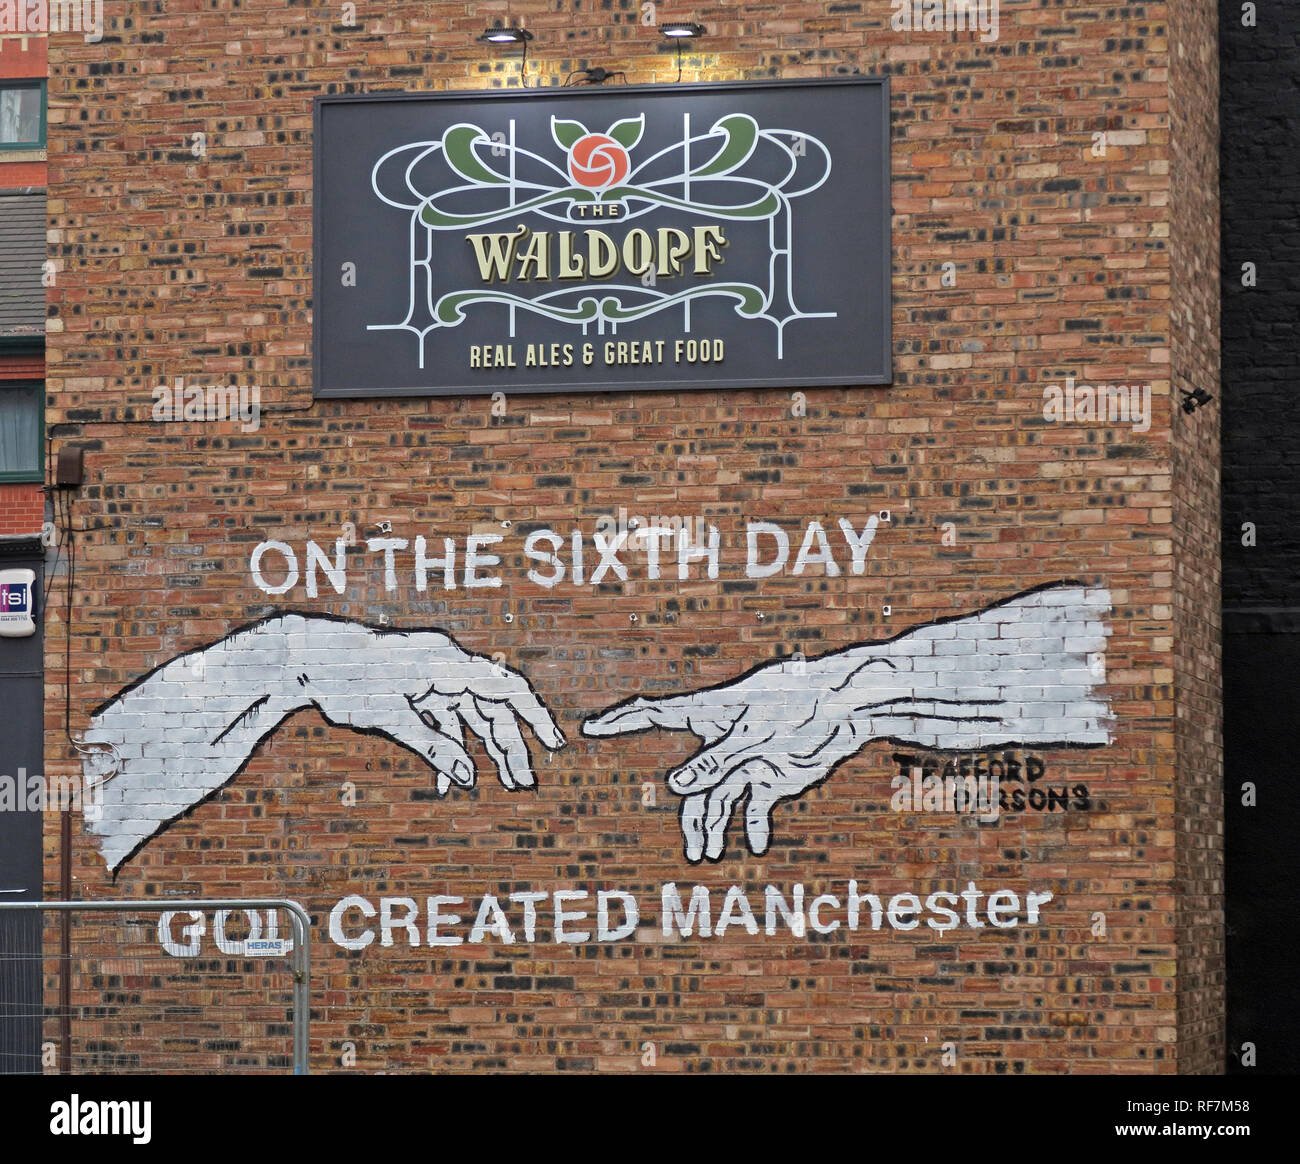 Manchester,City Centre,city,NQ,NQ4,Northern Quarter,North West,England,UK,GoTonySmith,HotpixUK,@HotpixUK,buildings,streets,fingers,hands,bar,pub,Gore Street,Piccadilly,Piccadilly Manchester,local,CAMRA,real ale,beers,Real Ales,cask ale,gable end,6th day,on the 6th day,God Created Man,Madchester,tasty food,menu,brick wall,sign,poster